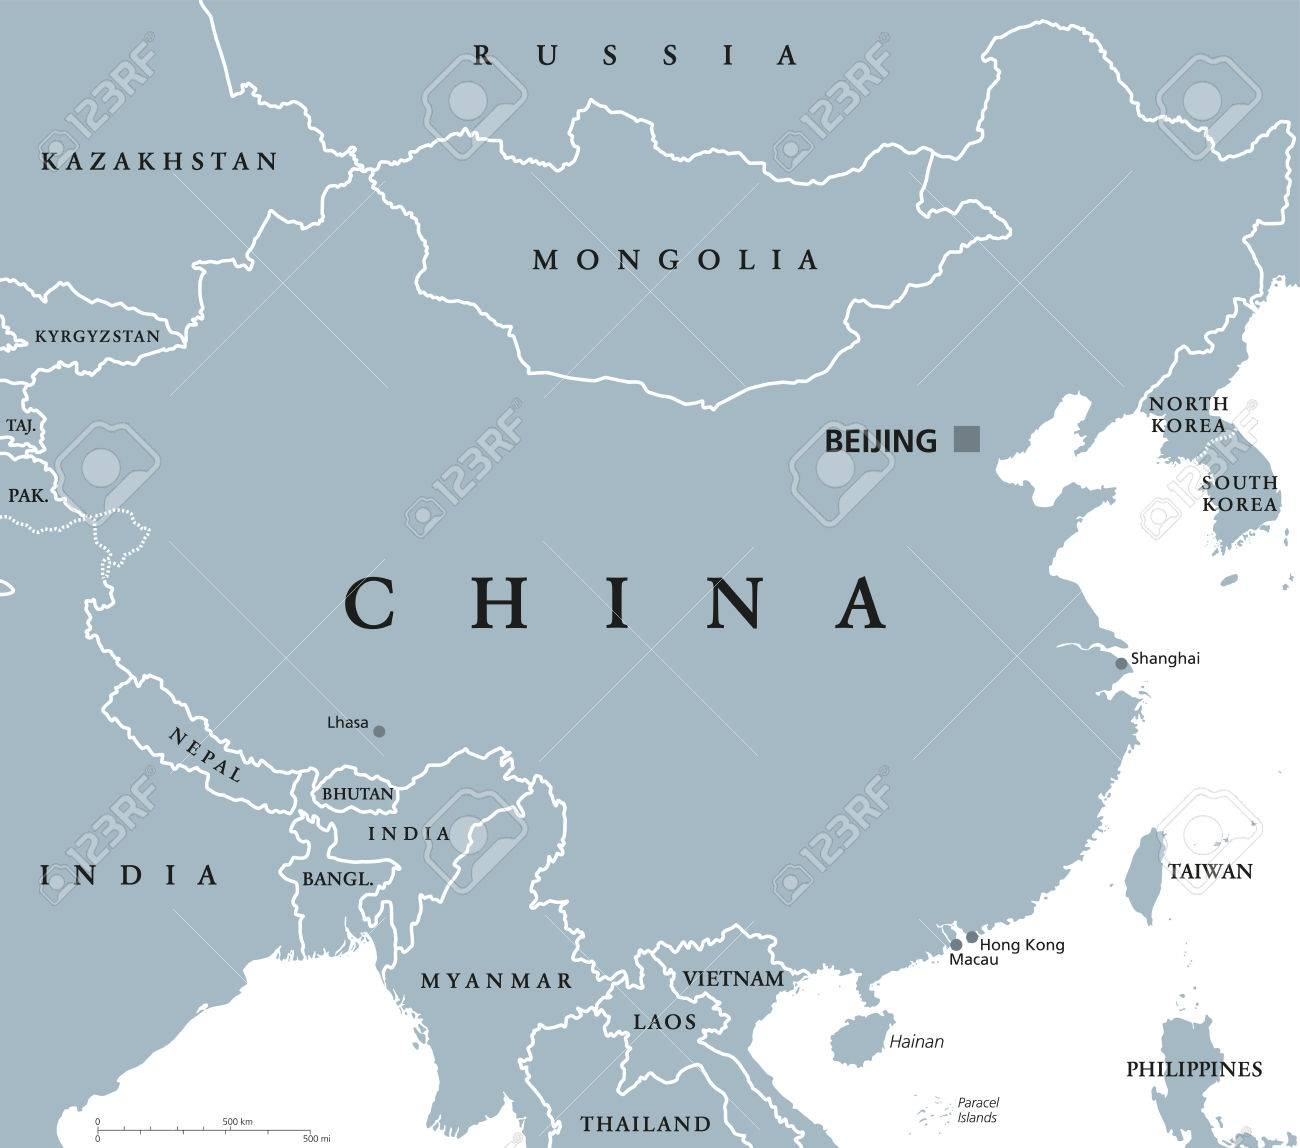 China Political Map With Capital Beijing And National Borders - China political map in english